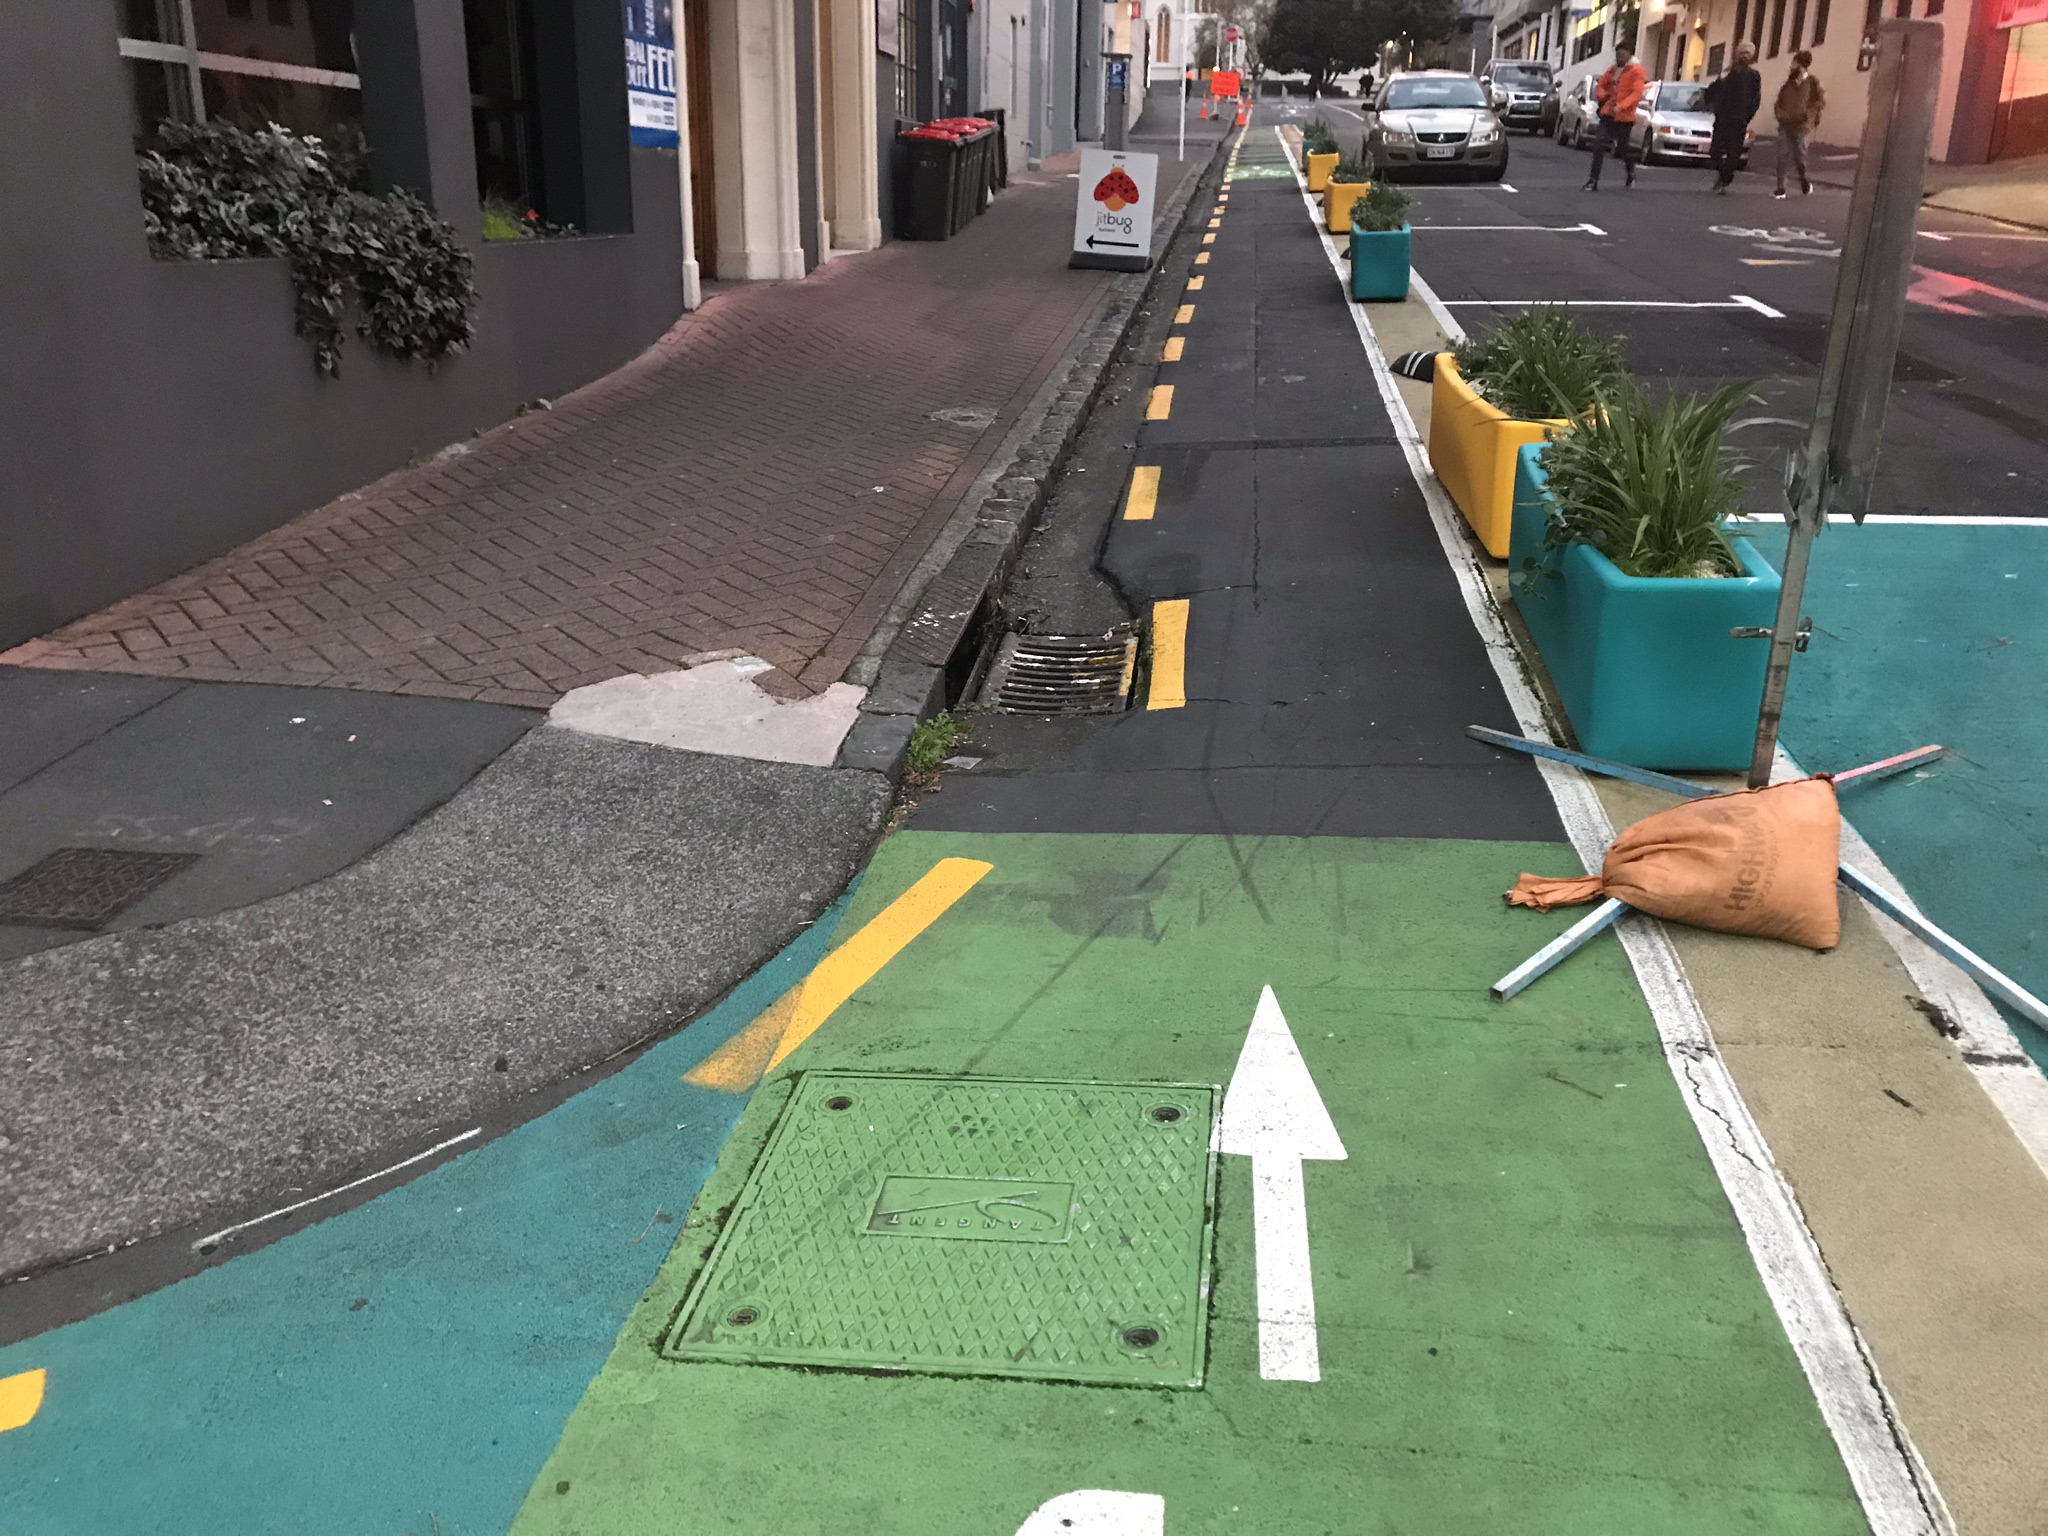 Contra-flow cycle lane